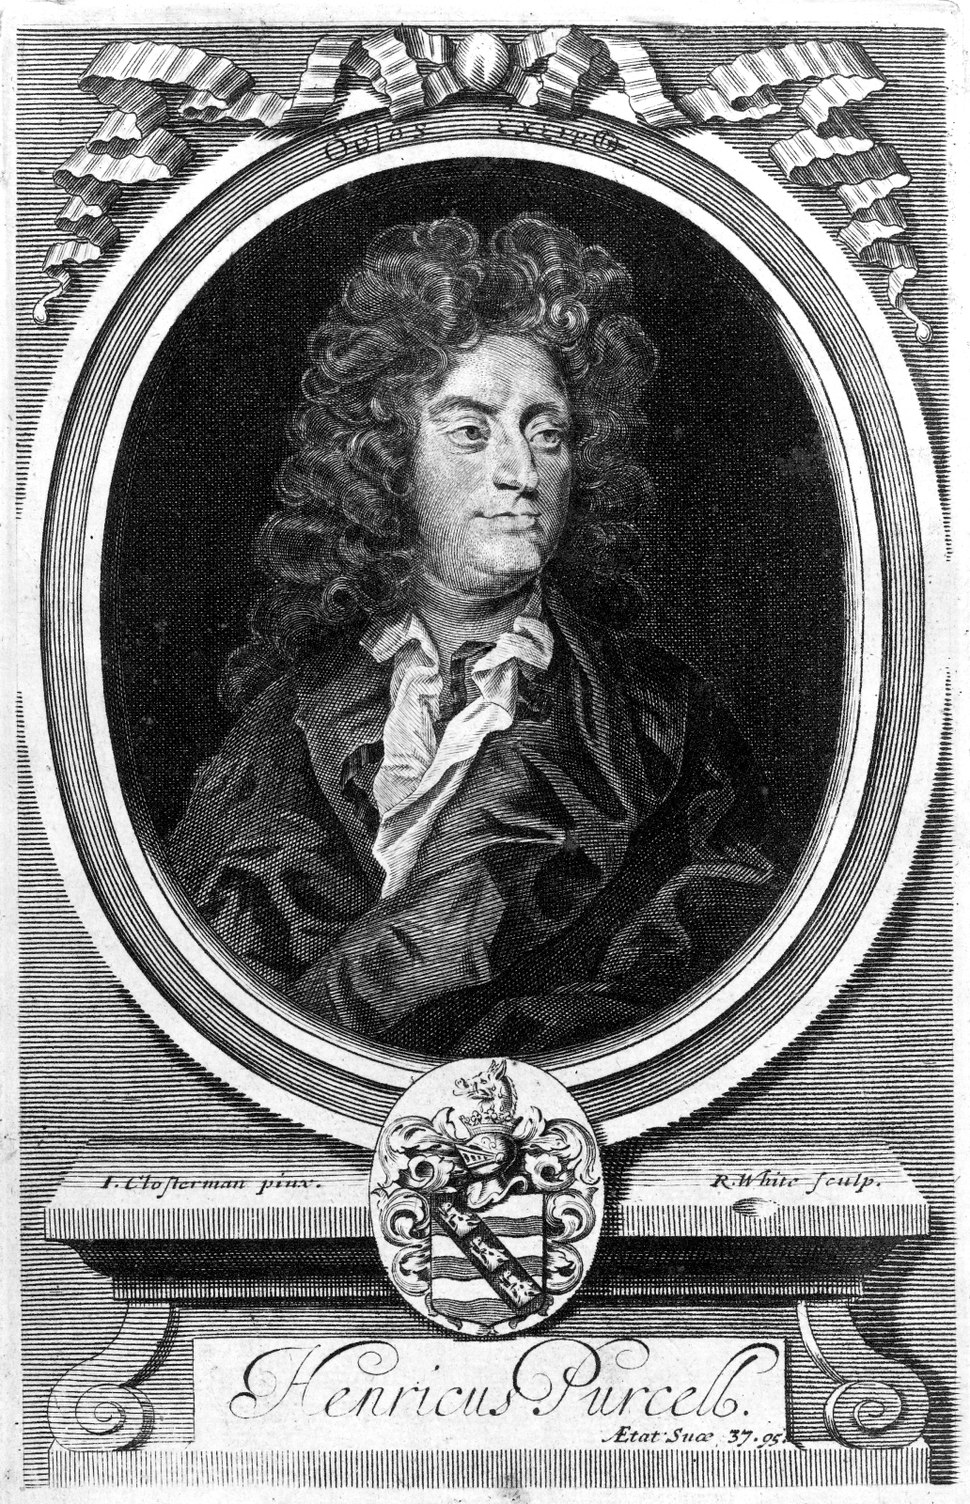 Purcell portrait